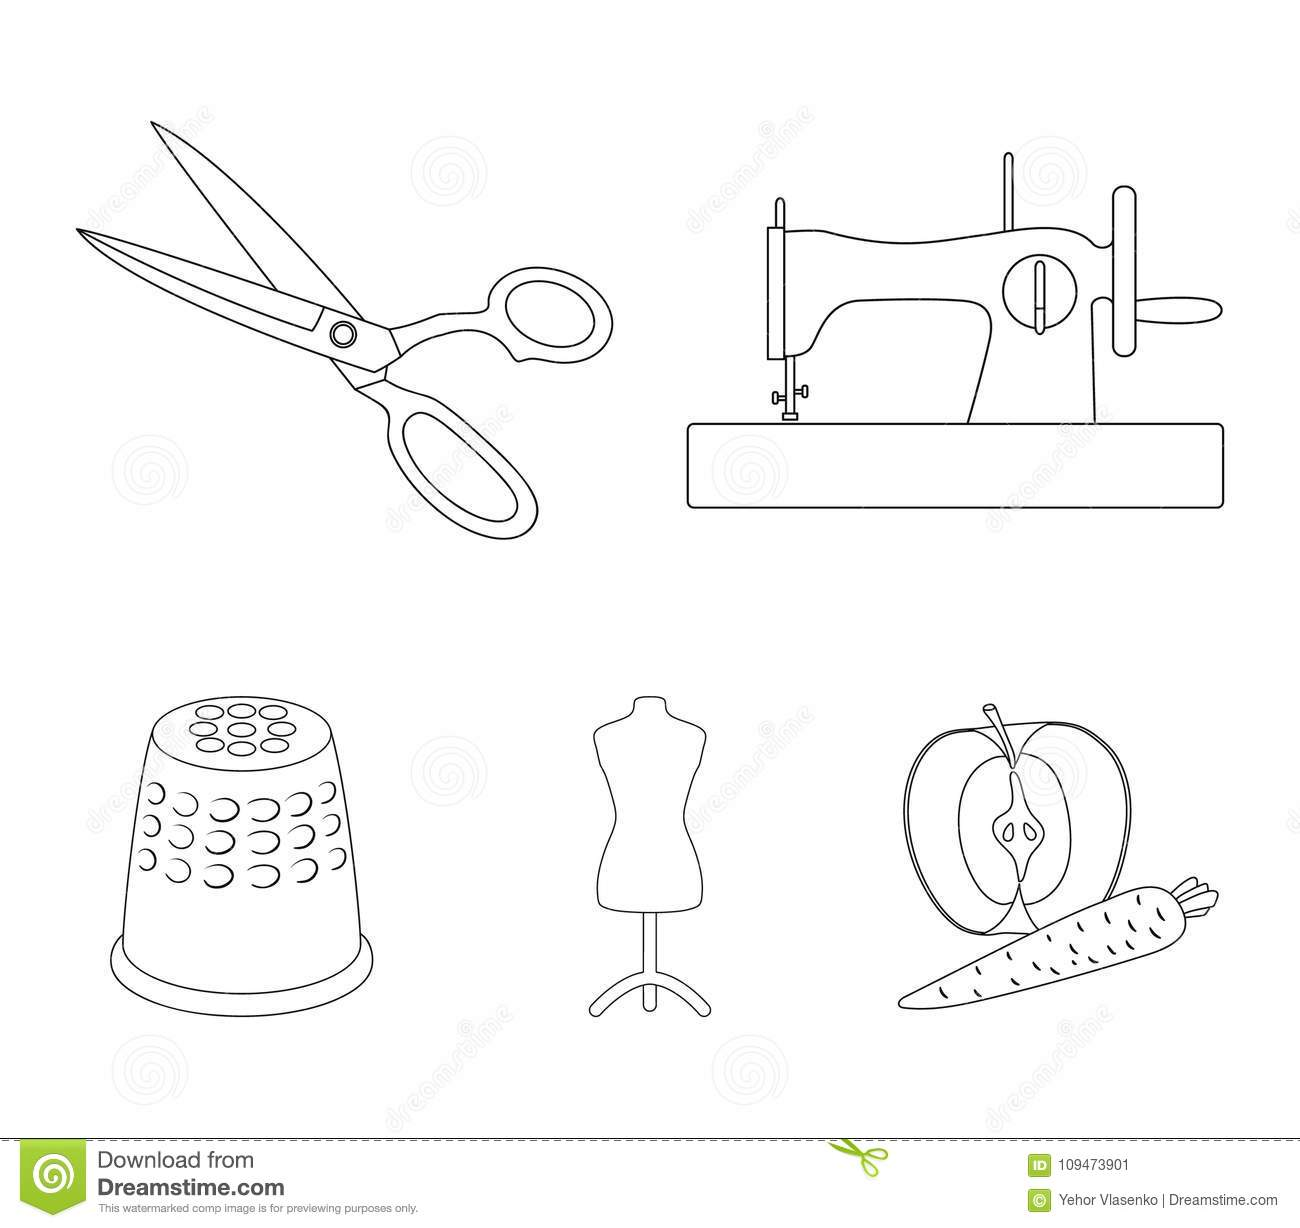 Manual sewing machine, scissors, maniken, thimble.Sewing or tailoring tools  set collection